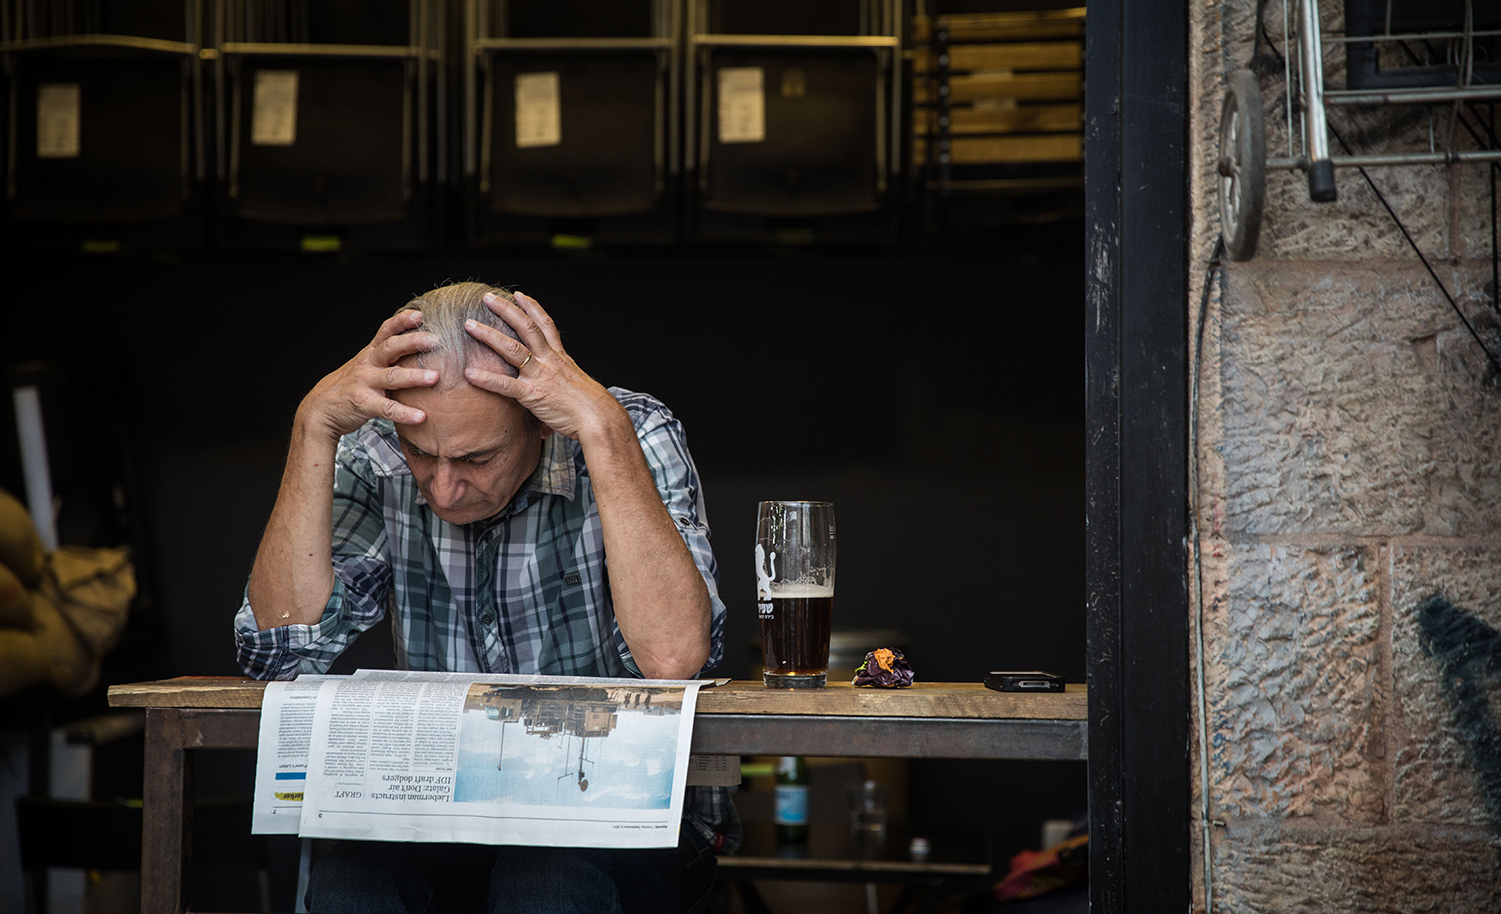 A man reads the newspaper at a cafe at the Mahane Yehuda Market in Jerusalem on September 5, 2017. Hadas Parush/Flash90.